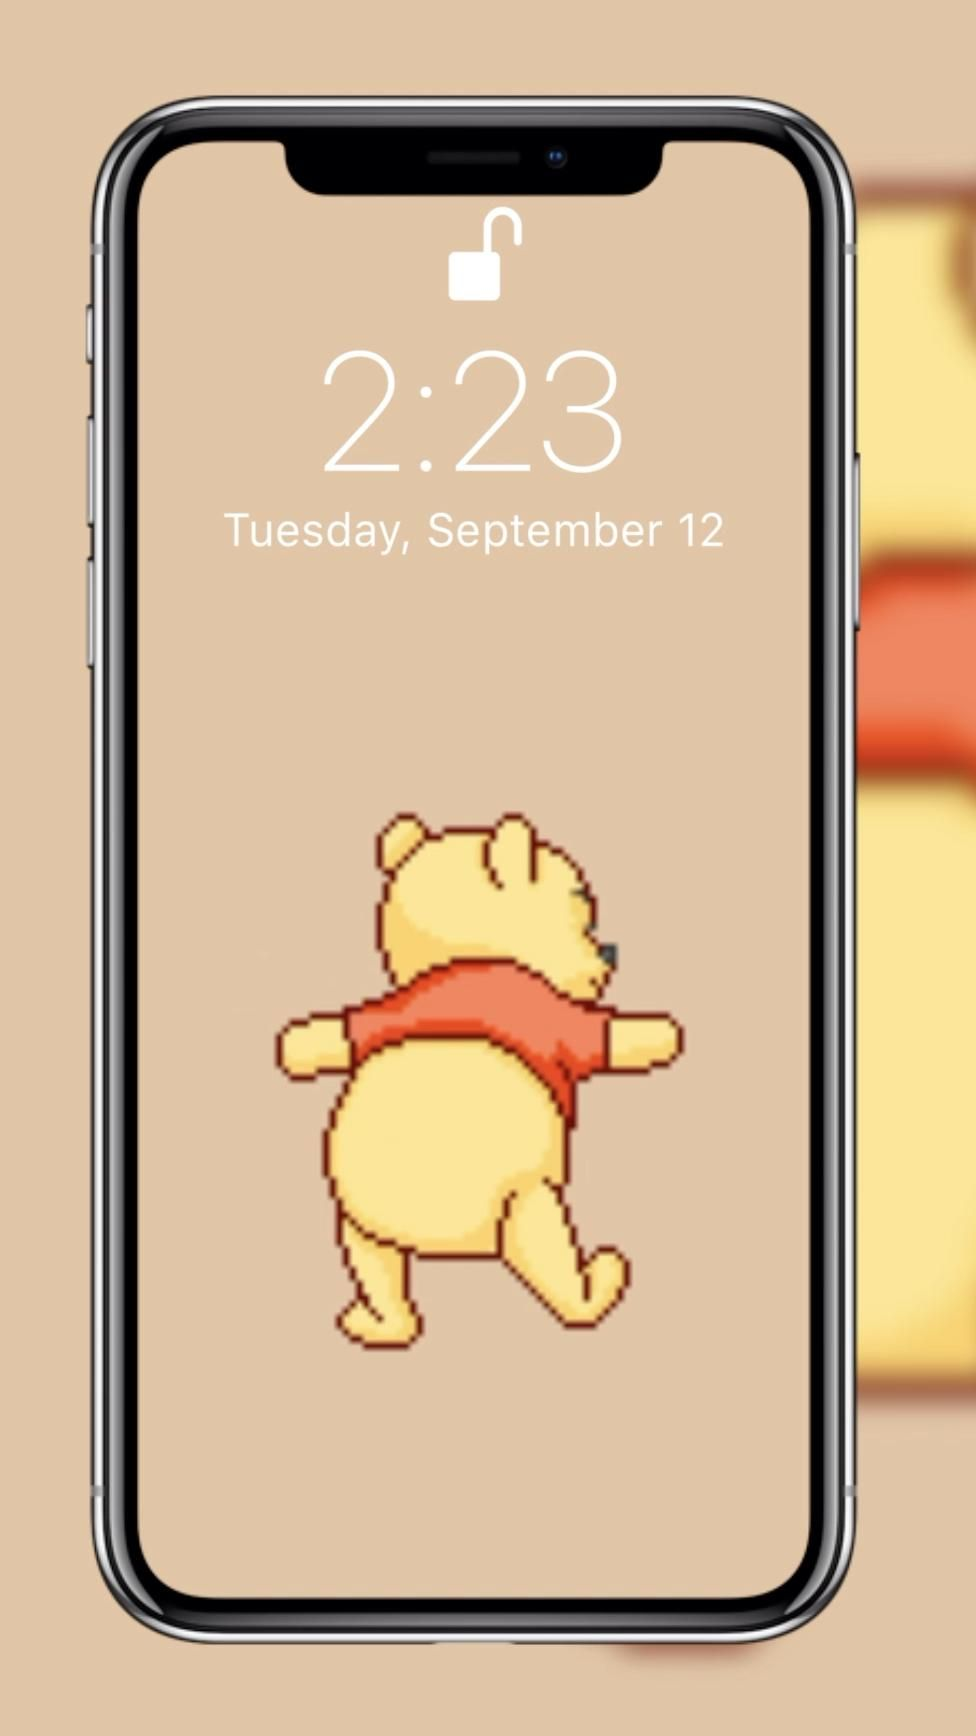 Winnie The Pooh Video In 2021 Galaxy Wallpaper Iphone Wallpaper Disney Wallpaper Cute moving wallpapers for cellphone